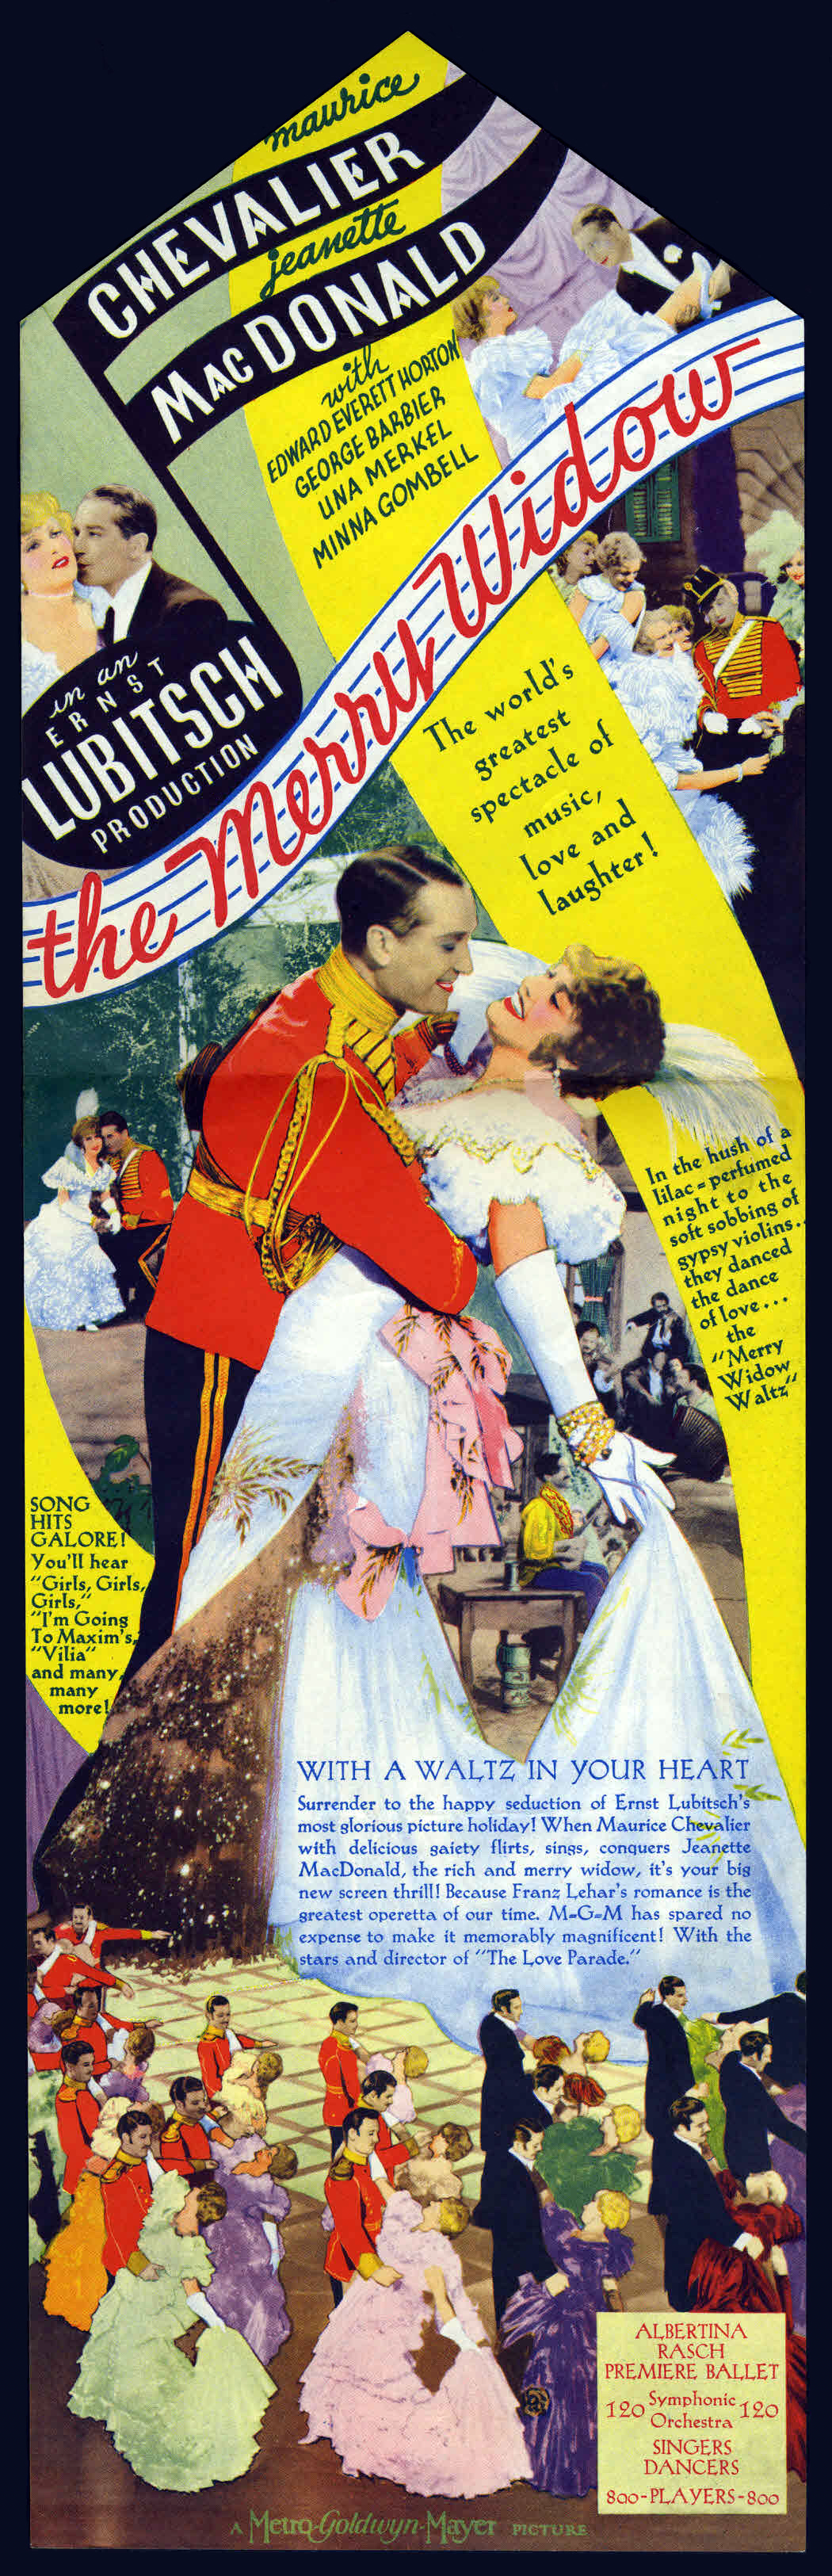 The Merry Widow (1934), starring Maurice Chevalier and Jeanette MacDonald, directed by Ernst Lubitsch; Australian daybill poster